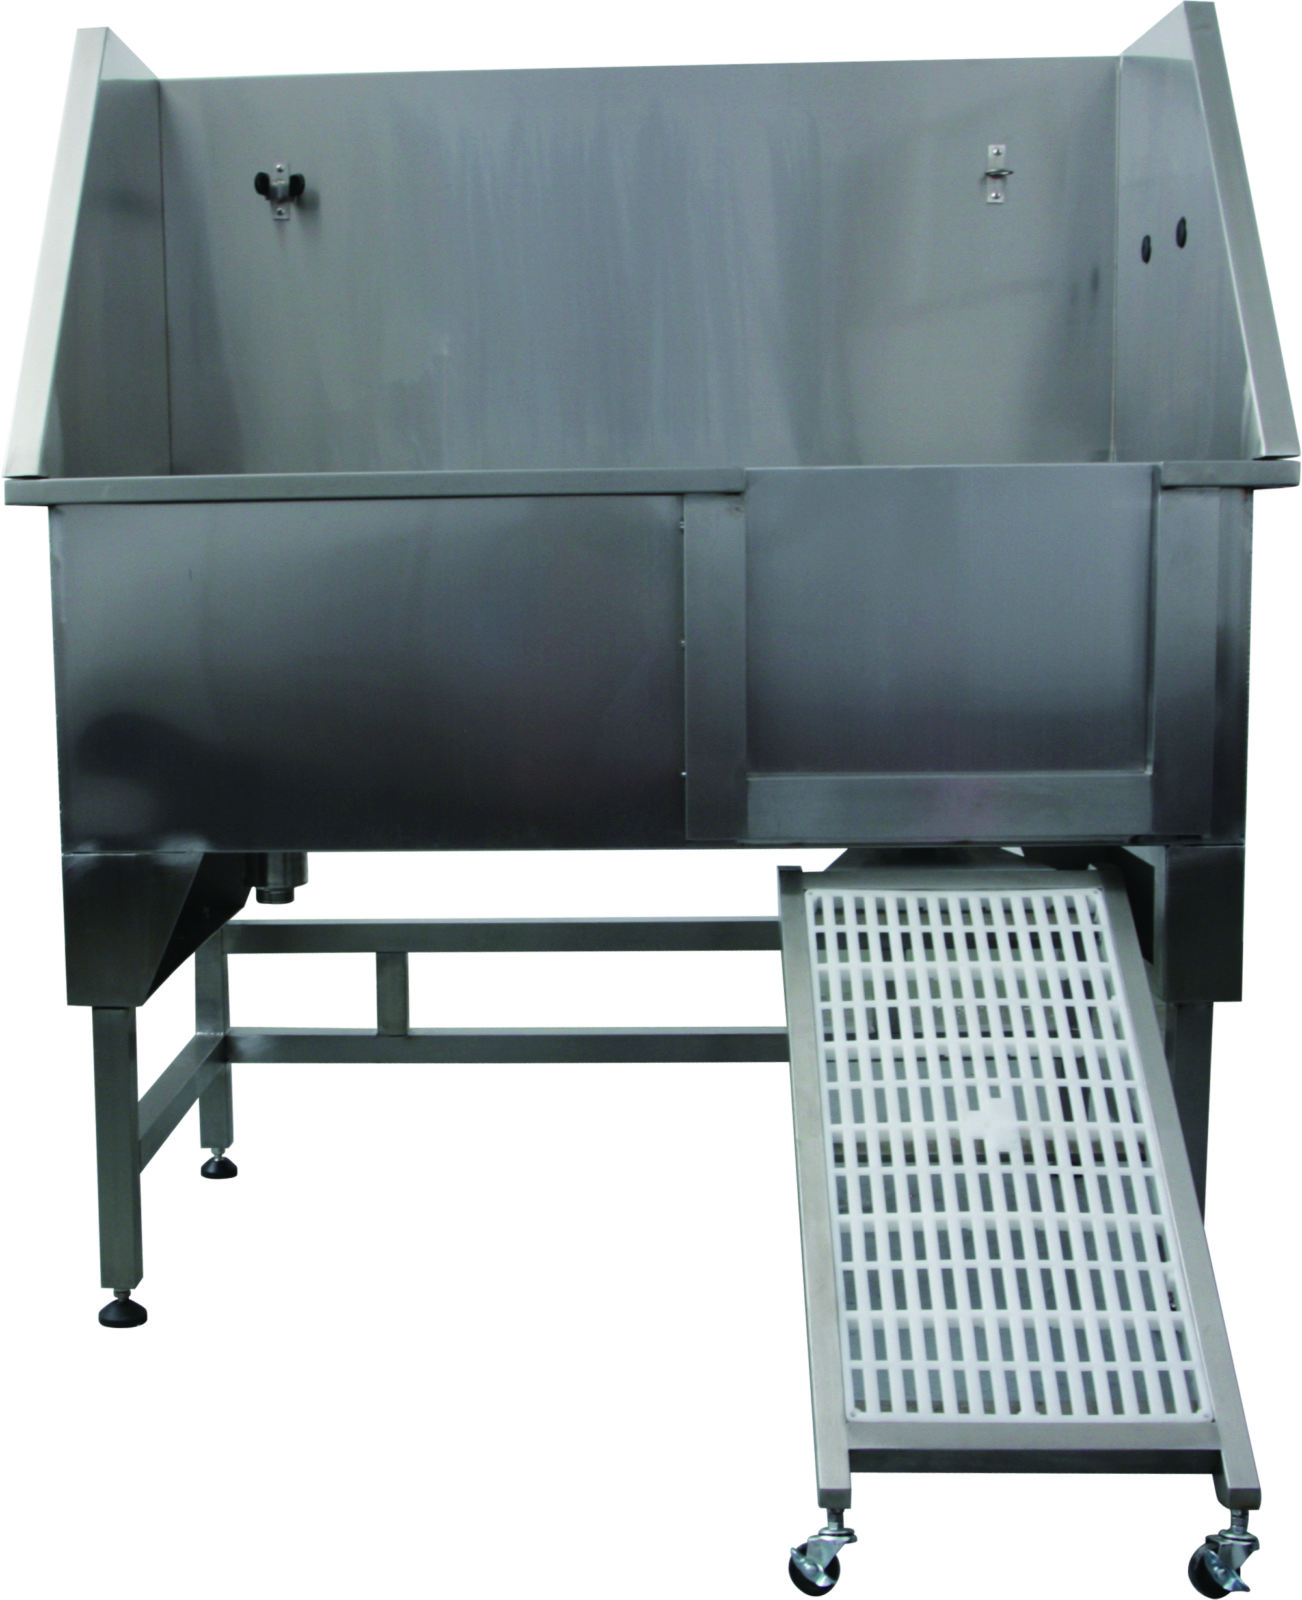 AEOLUS STAINLESS STEEL BATH WITH SWING RAMP + FREE PRODUCTS VALUED @ $105.36+